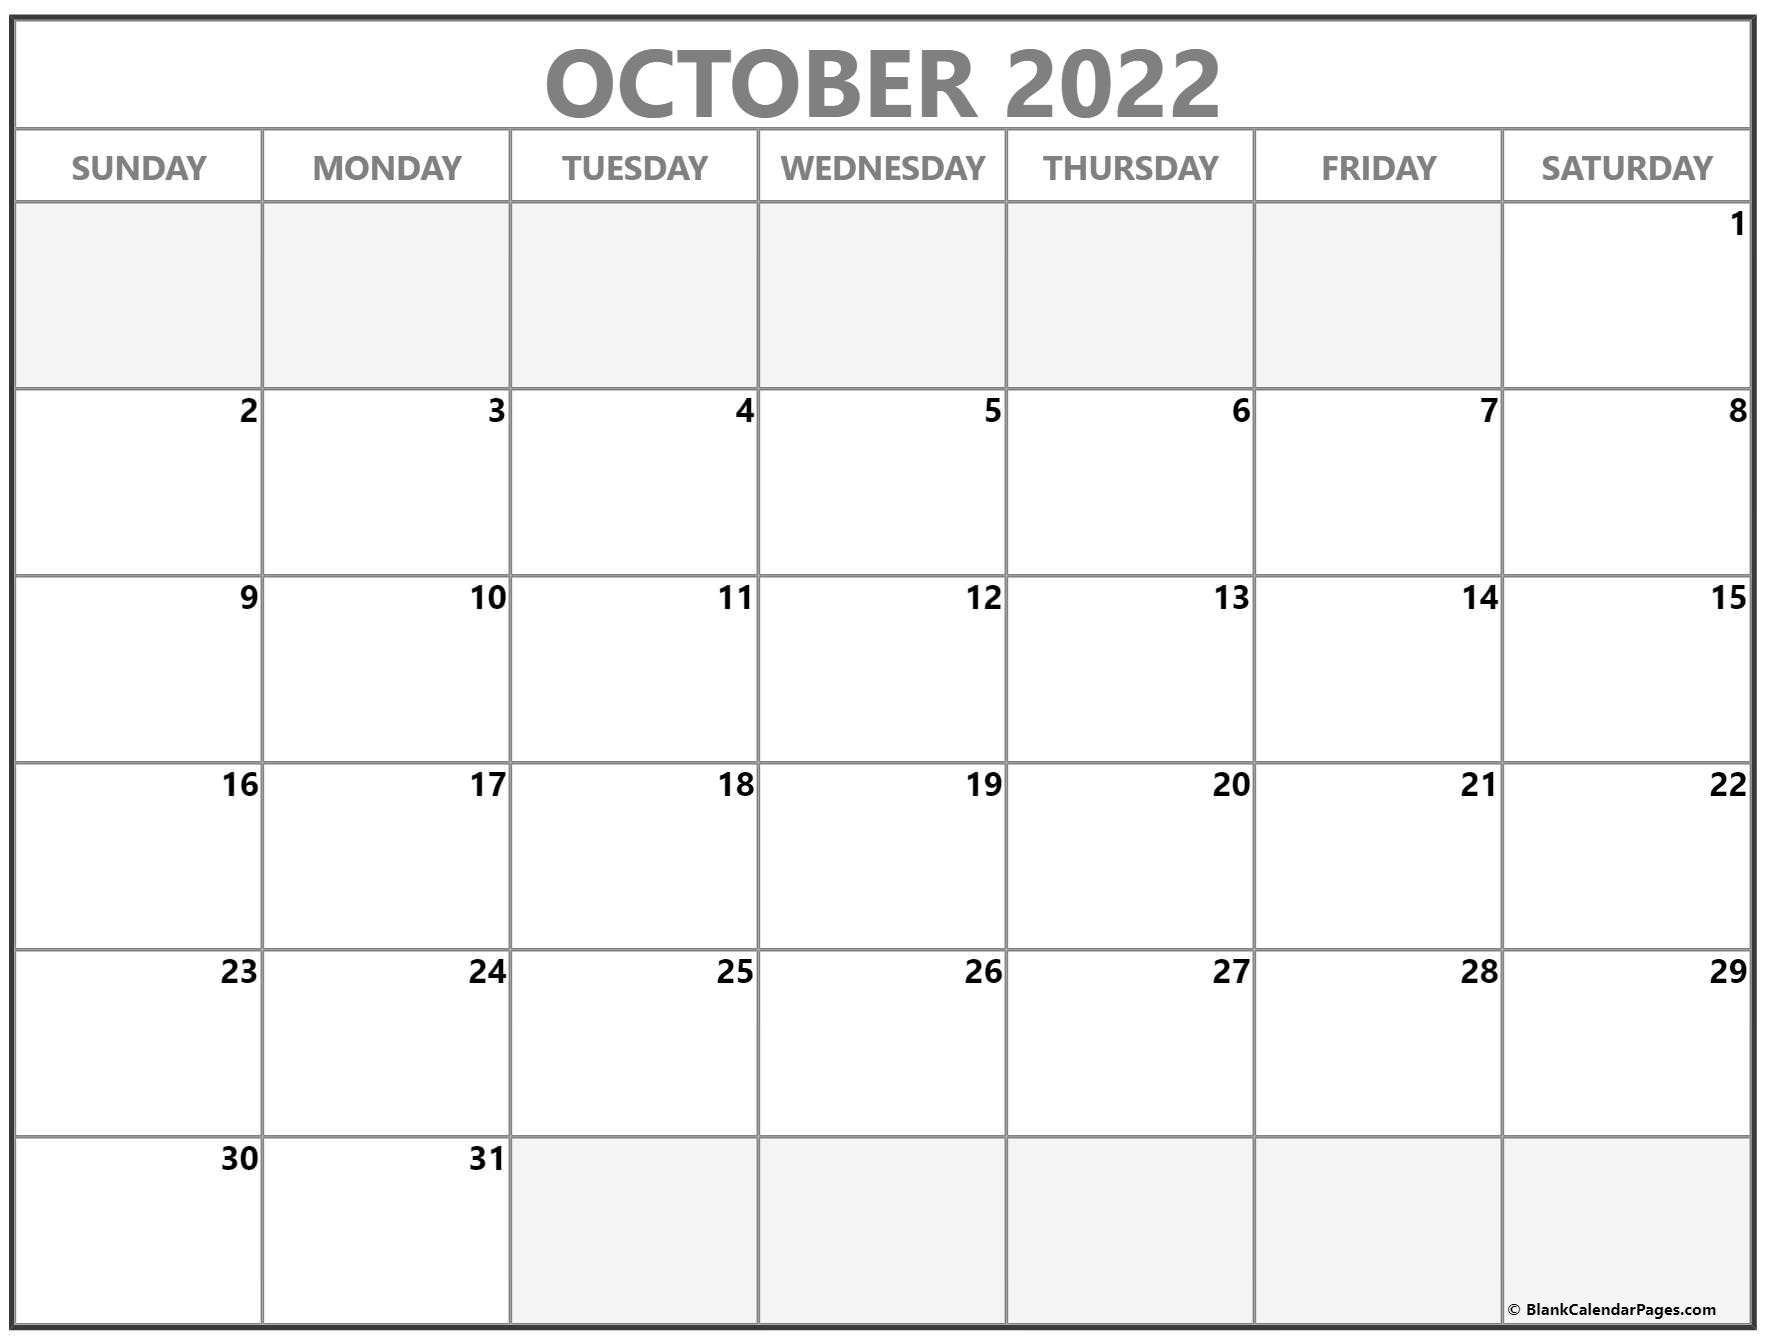 Free printable january 2022 calendars landscape layout calendar template is available with usa public holidays in a classic design pdf template. October 2022 calendar | free printable calendar templates